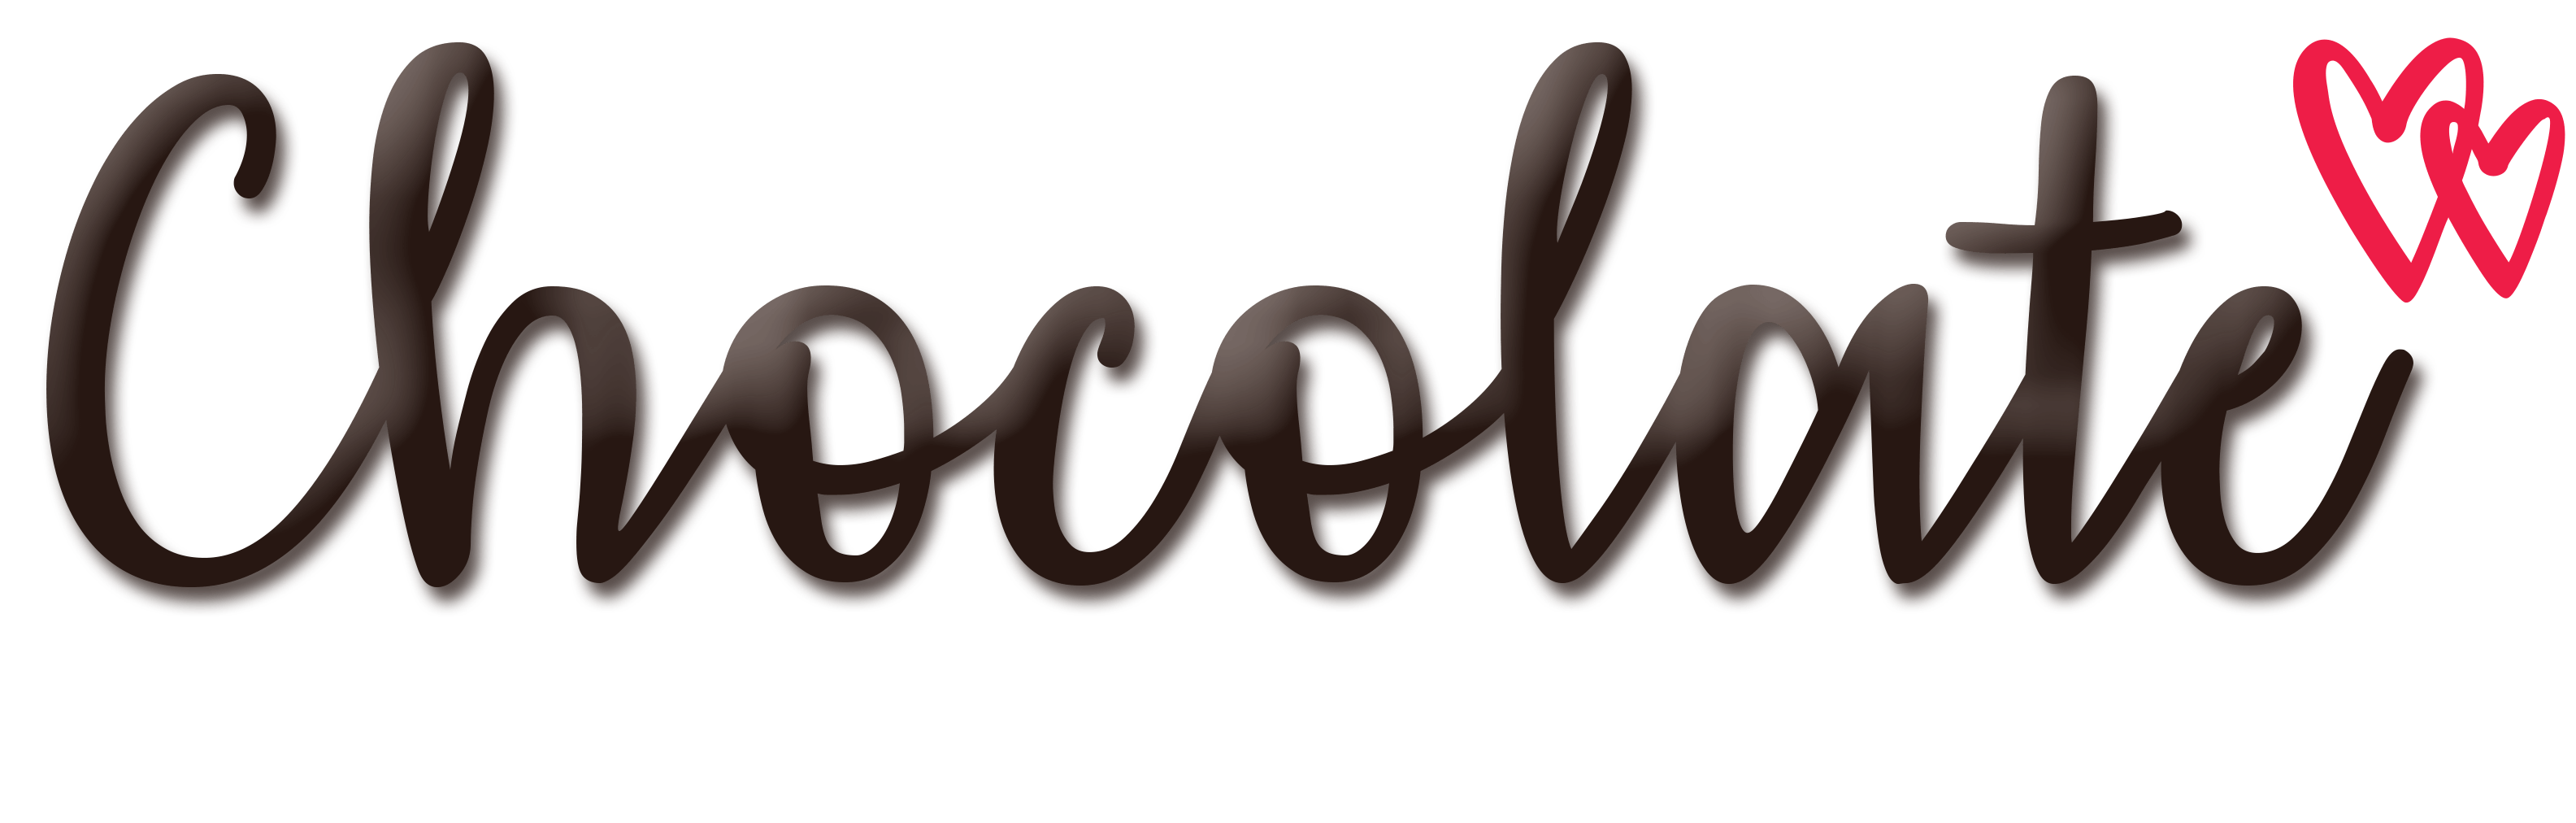 Chocolate Workshops In The UK